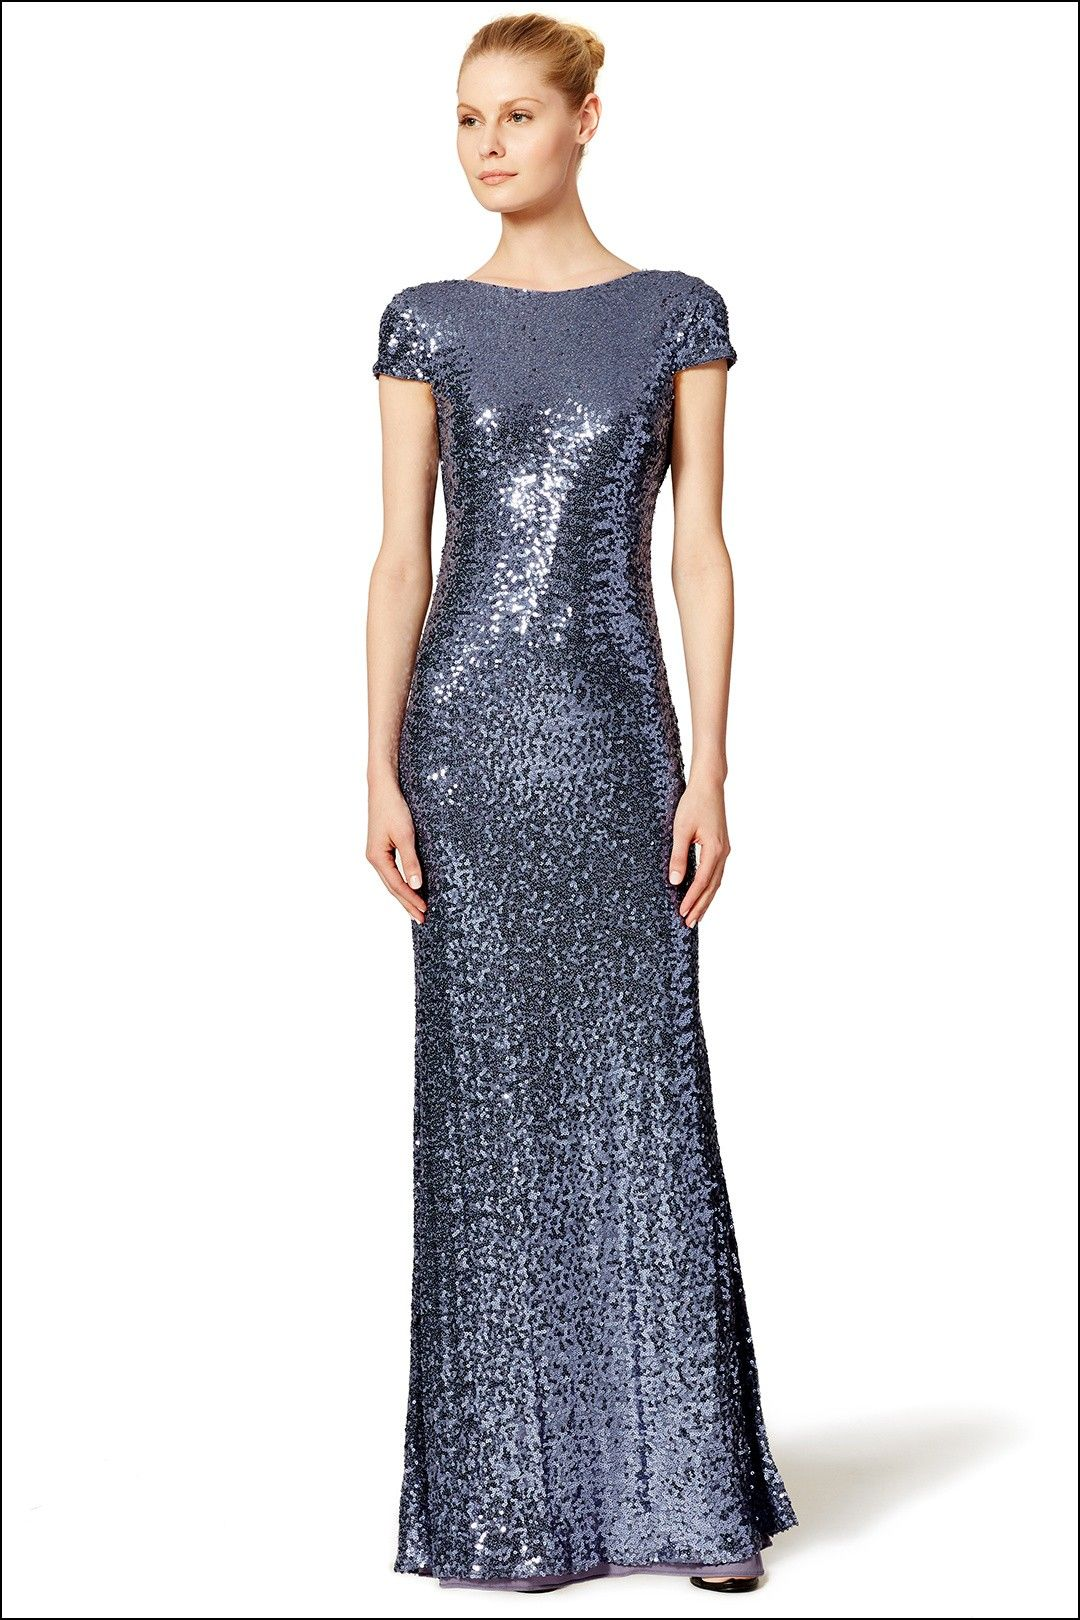 Evening Gown Hire | Formal wear | Pinterest | Gowns, Formal wear and ...